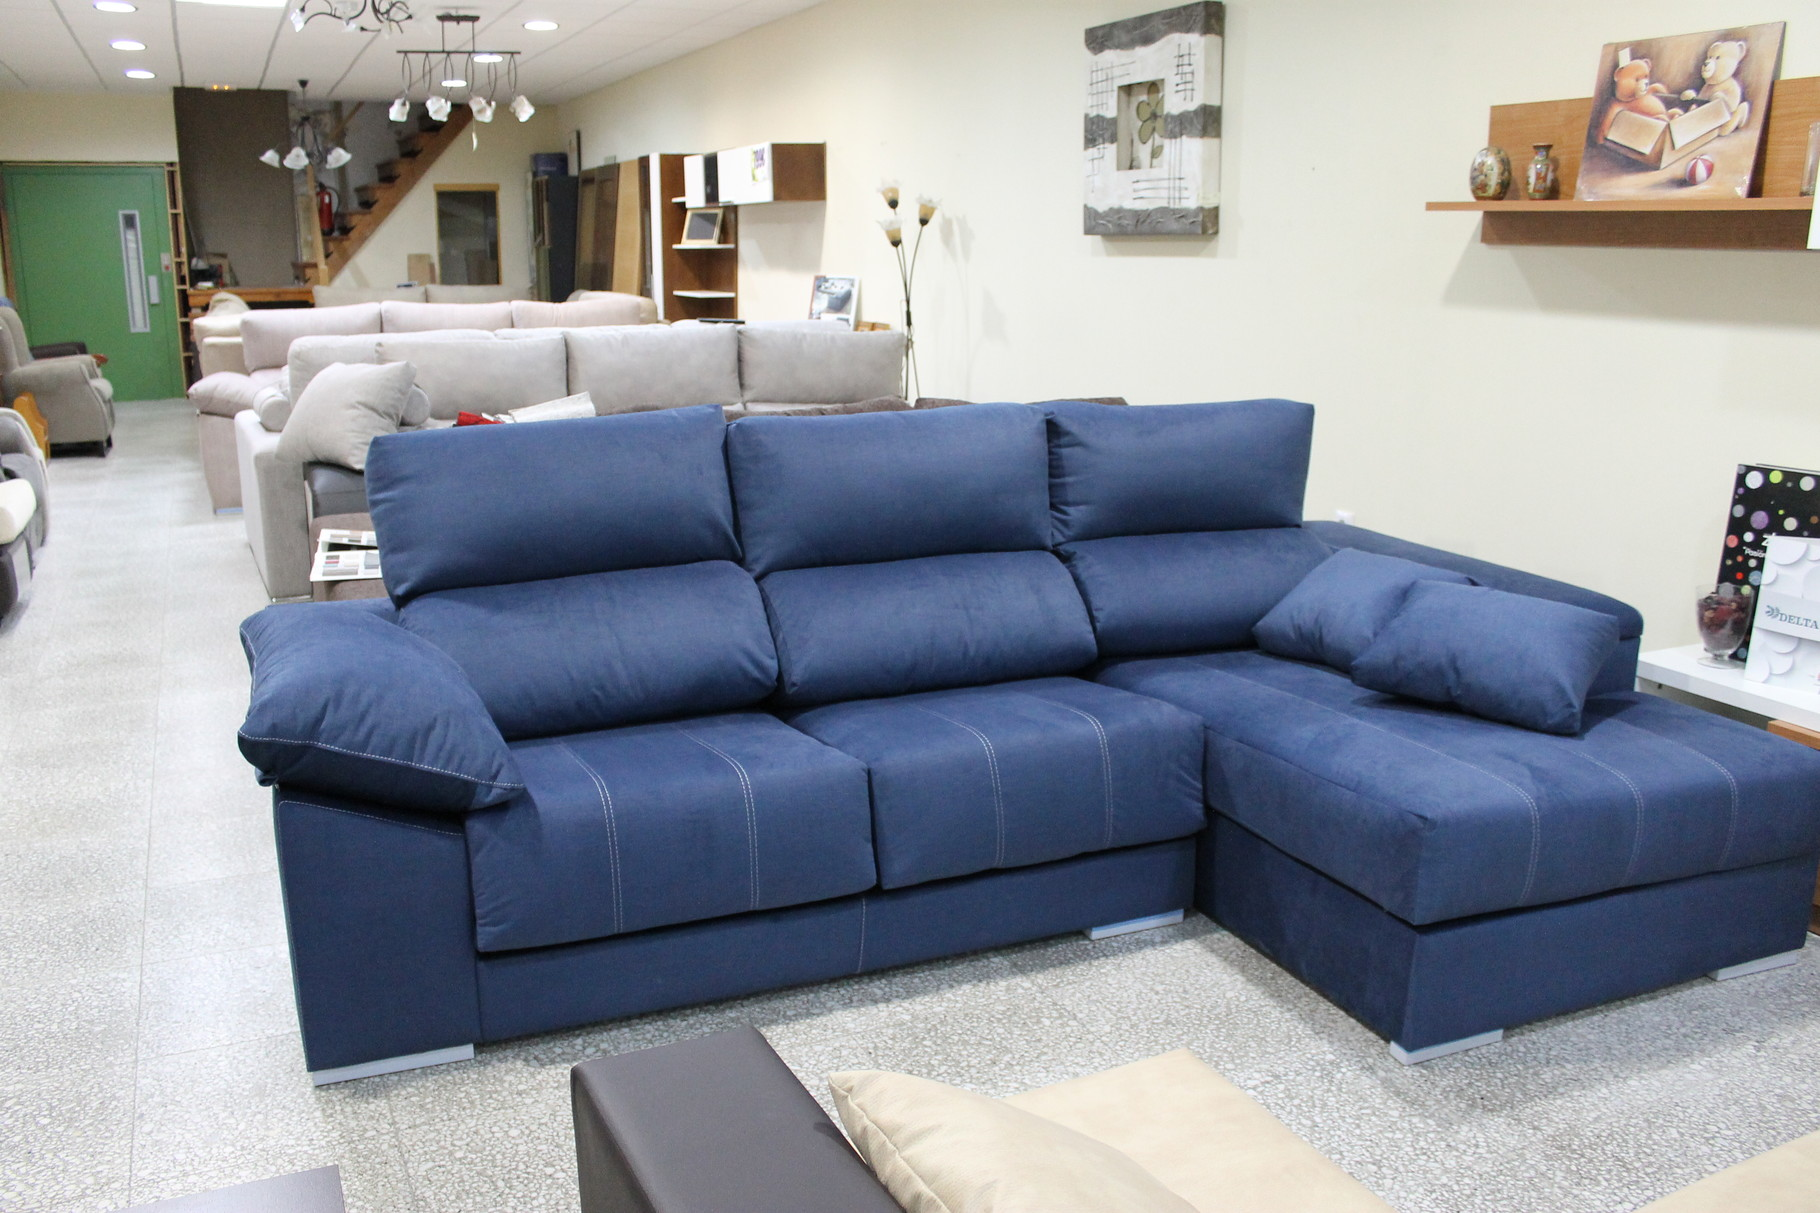 Sofa chaiselonge atlanta gran surtido en salones for Sofas comodos barcelona